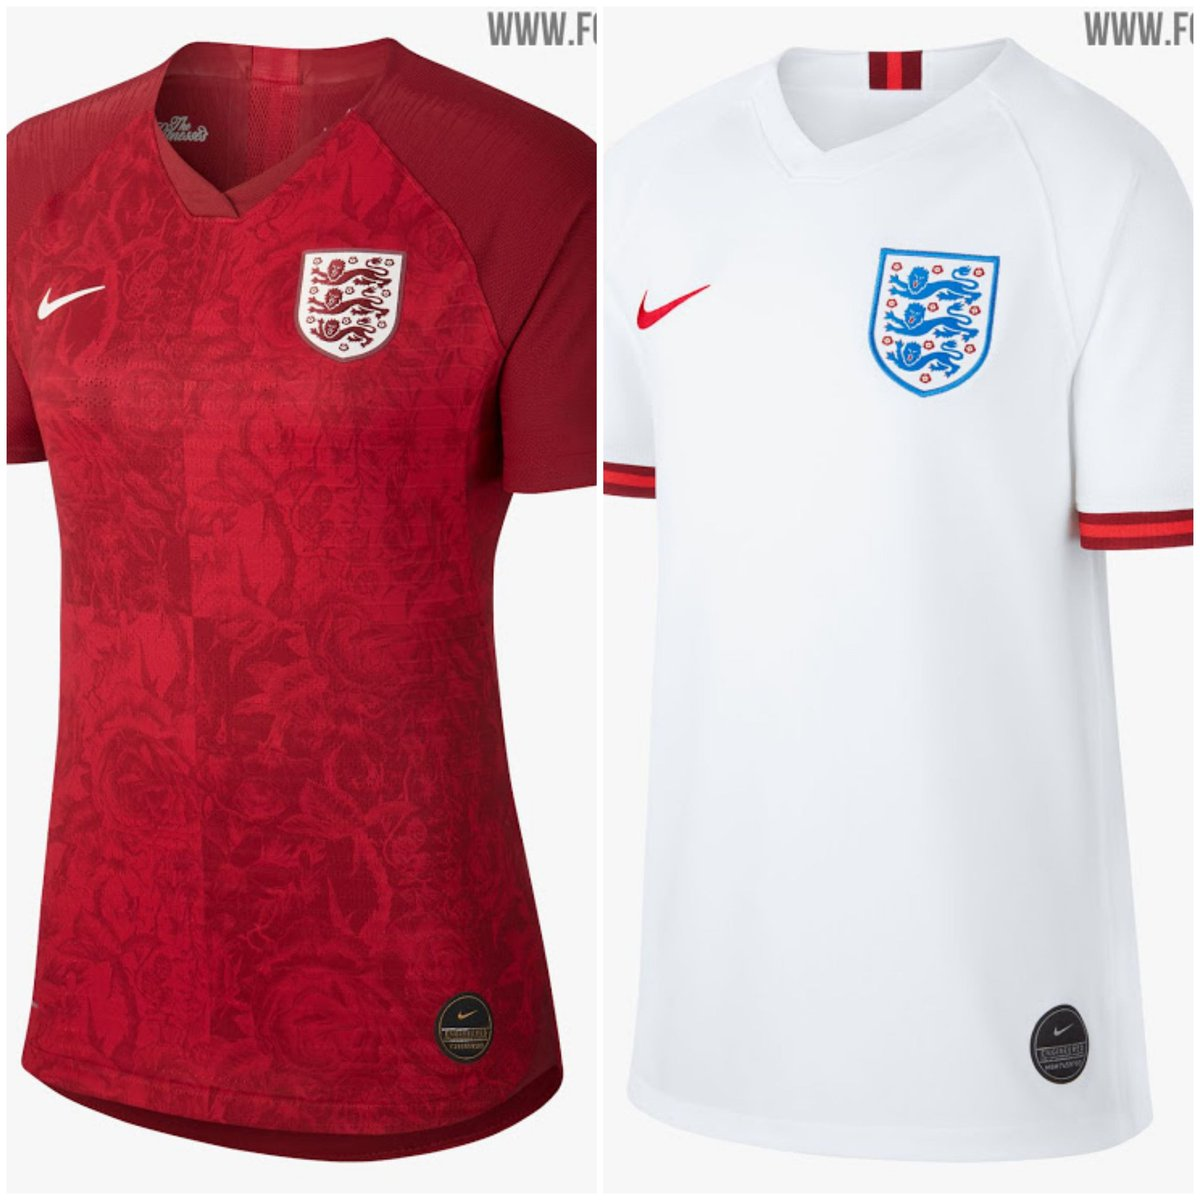 @Lionesses the new kits out tomorrow, have the squad numbers been decided yet? If not could you just tell me the numbers for @lilkeets and @bmeado9 as I have my instructions respectively